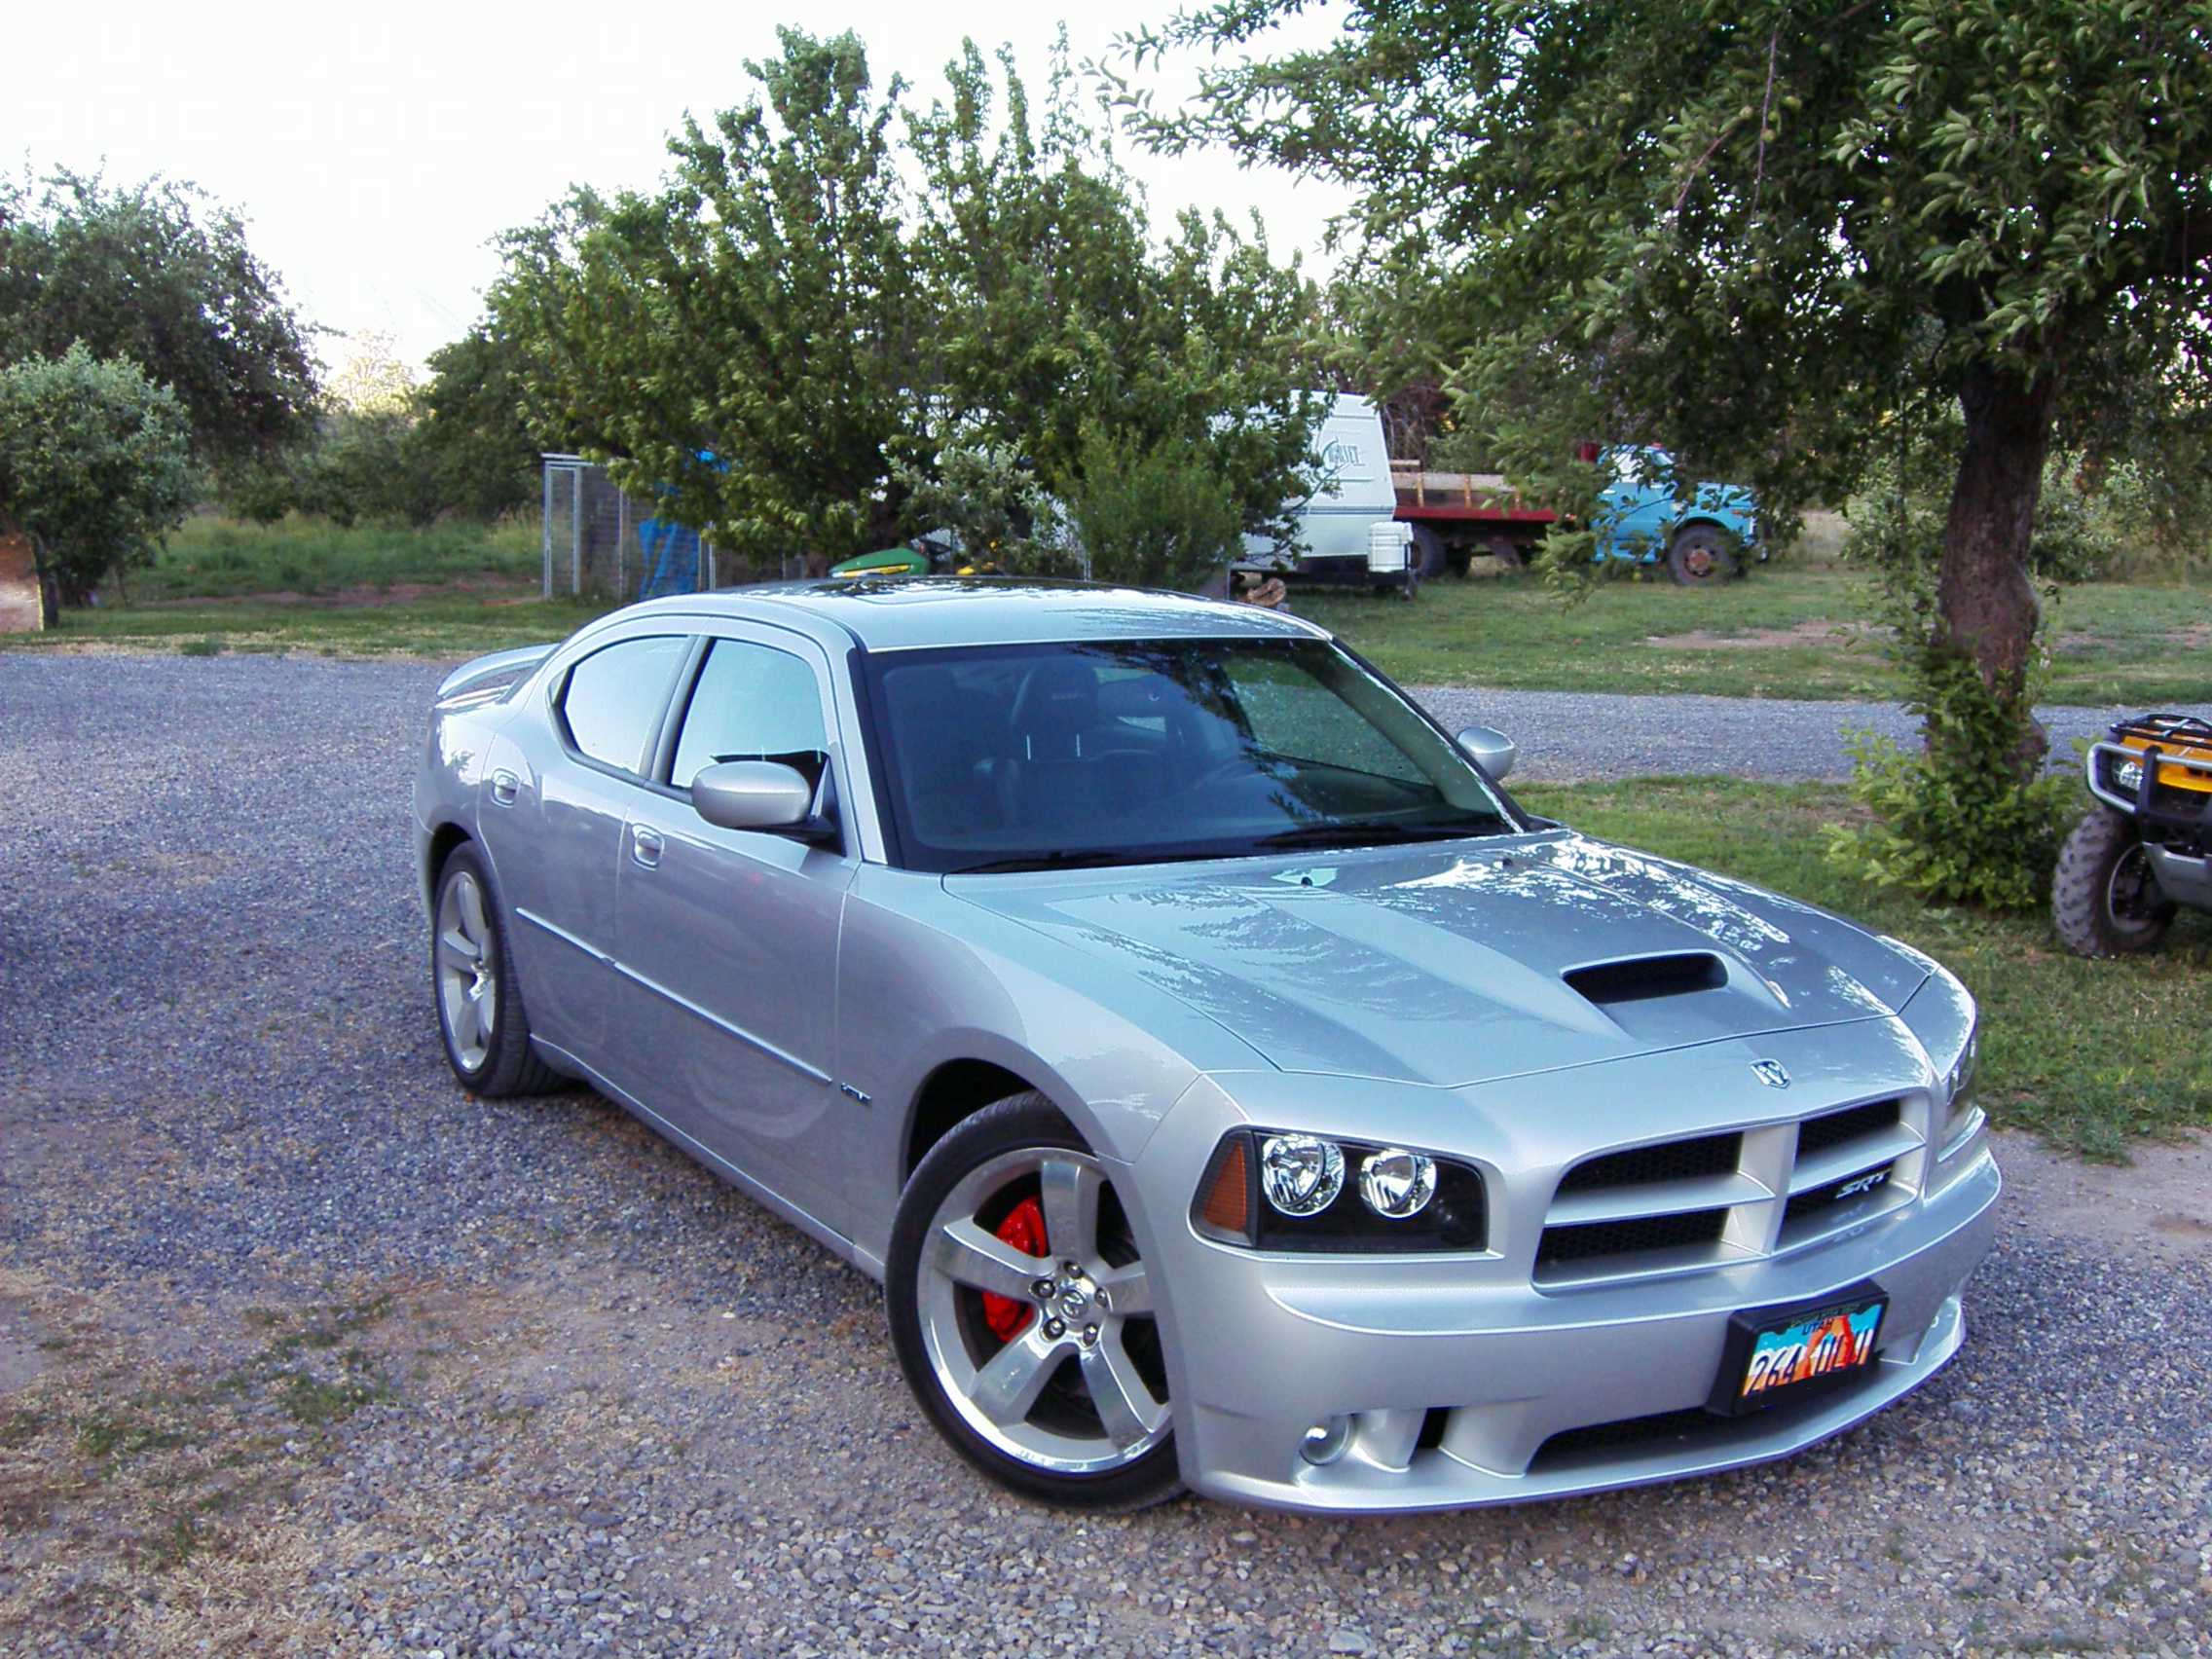 calling silver srt8's - Dodge Charger Forums